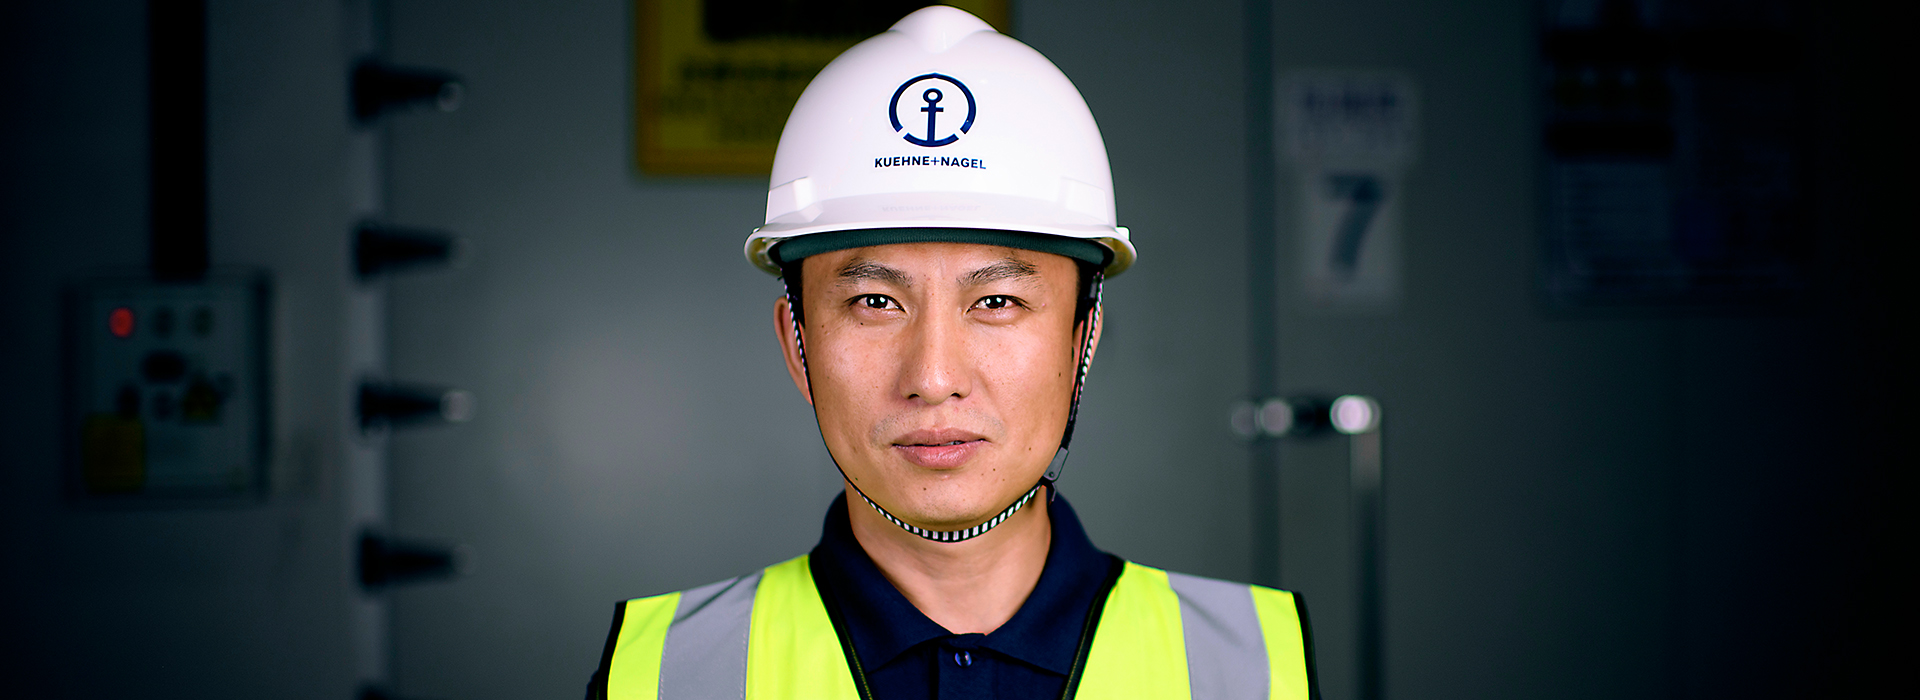 A worker with a helmet